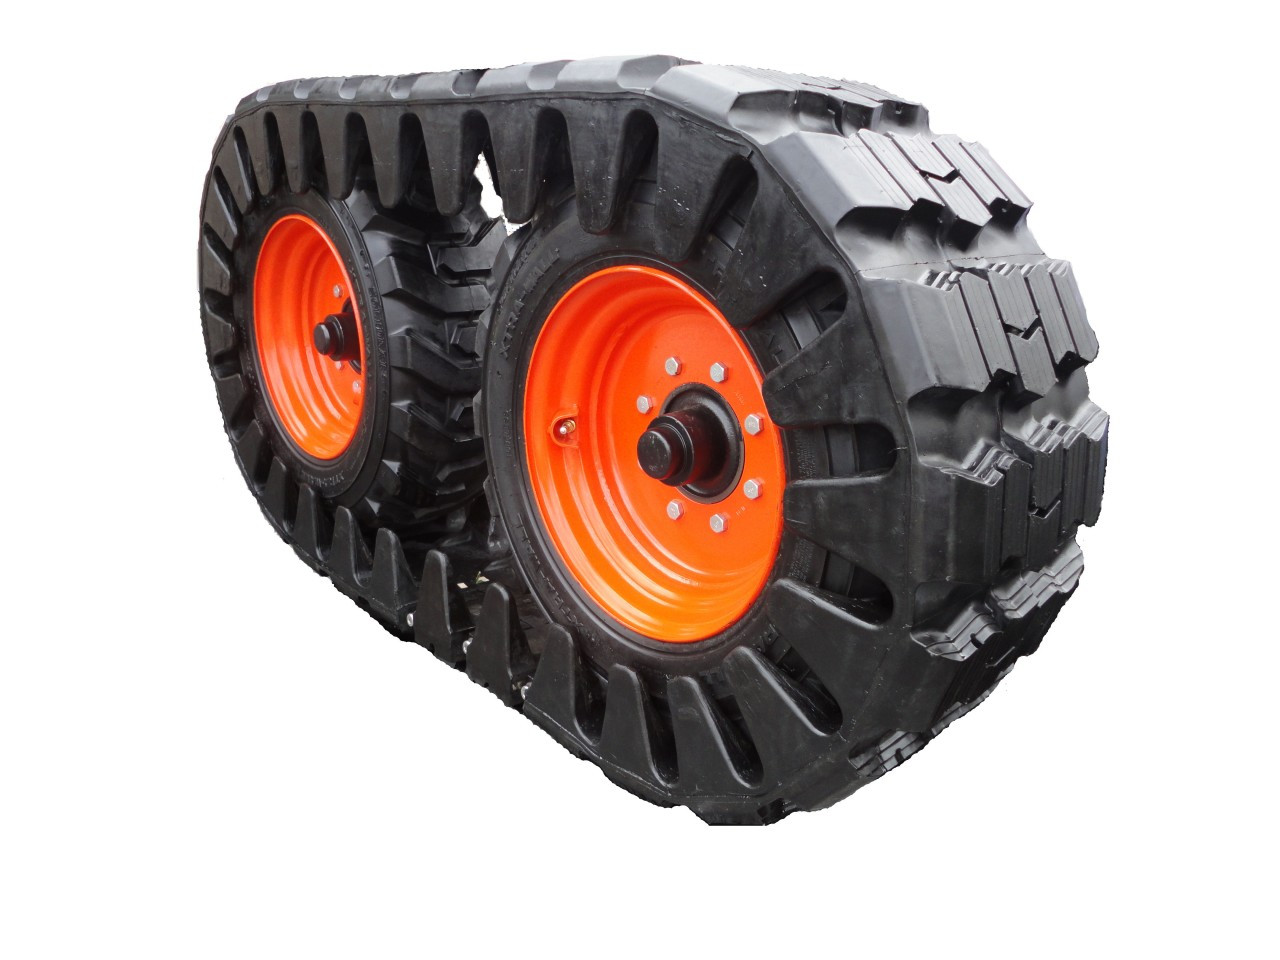 Skid Steer Rubber Tracks For Tire 12 x 16.5 Size